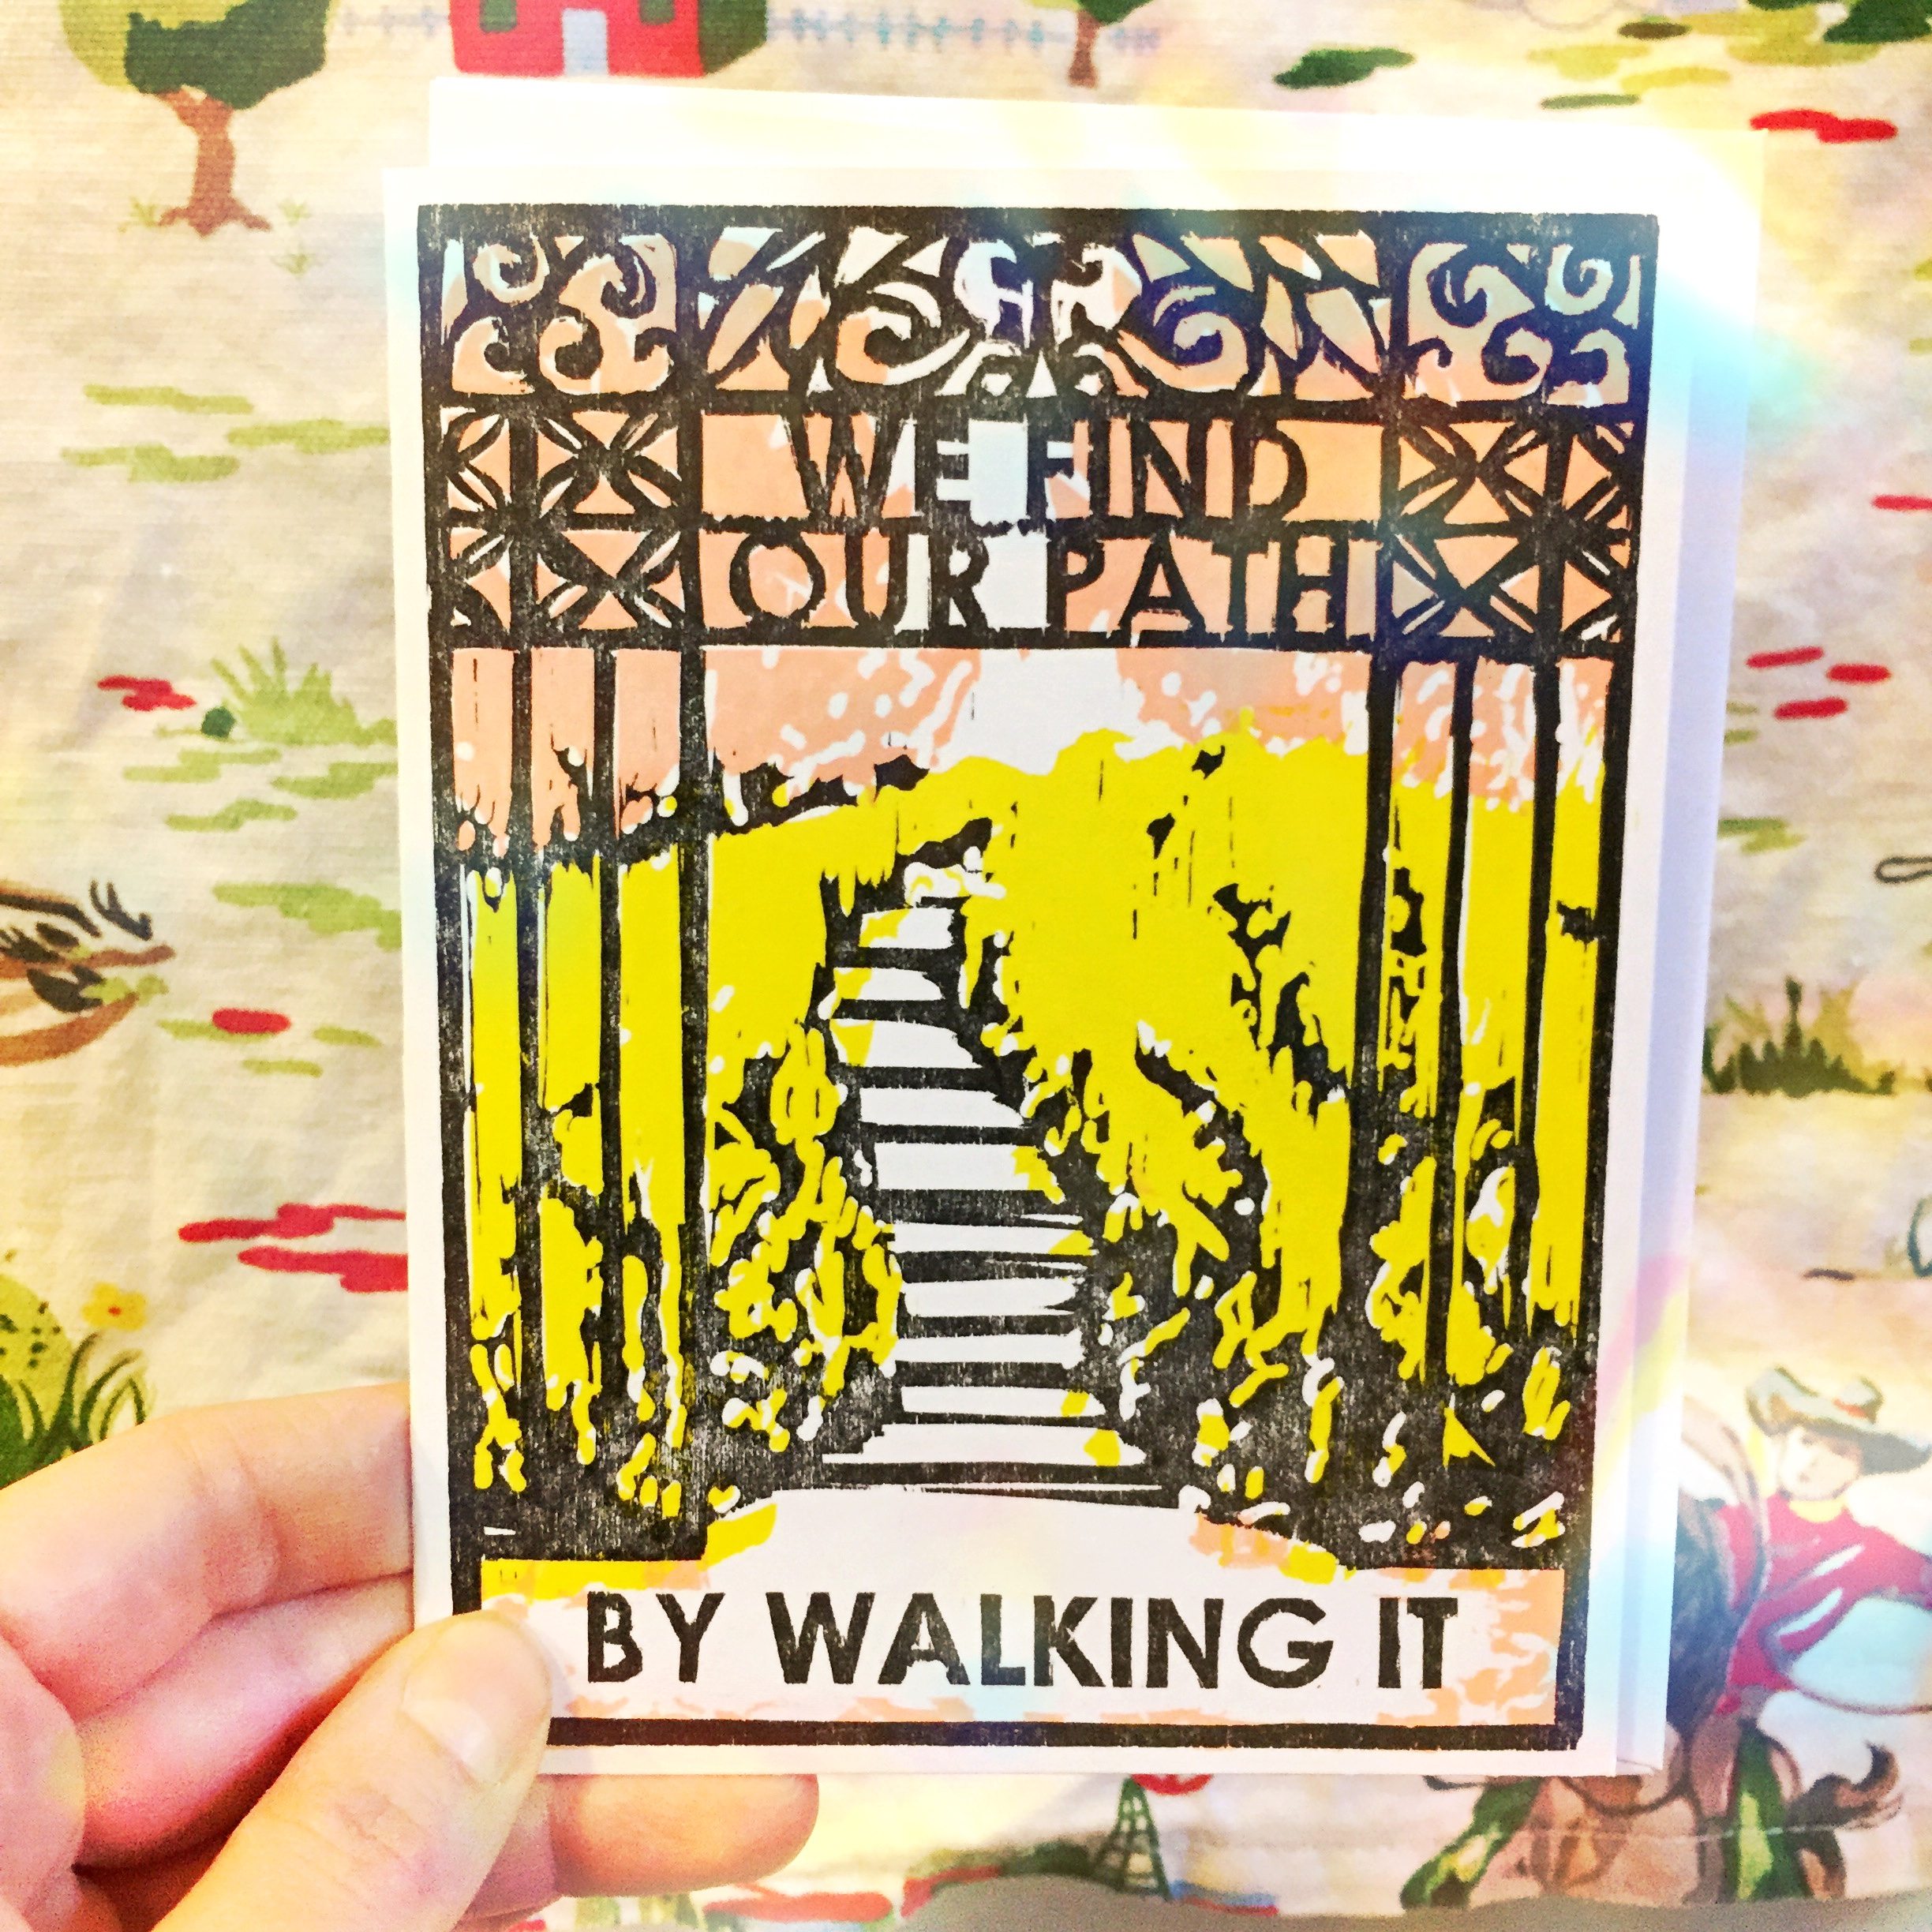 We Find Our Path - Heartell Press